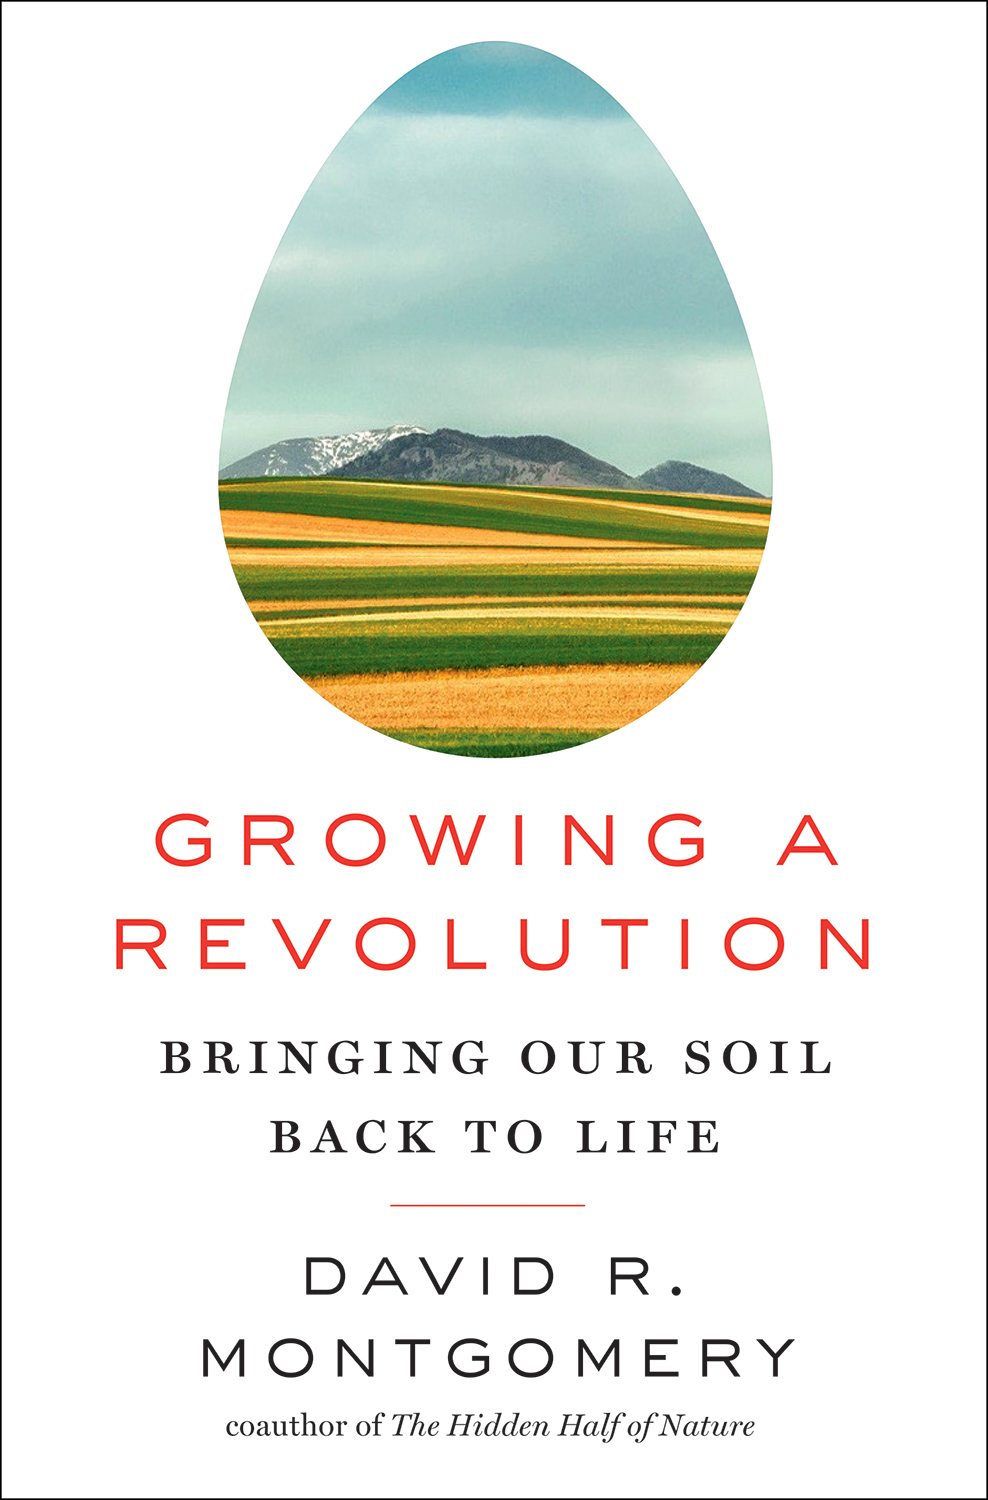 Photo Used on New Book Growing a Revolution David R Montgovery